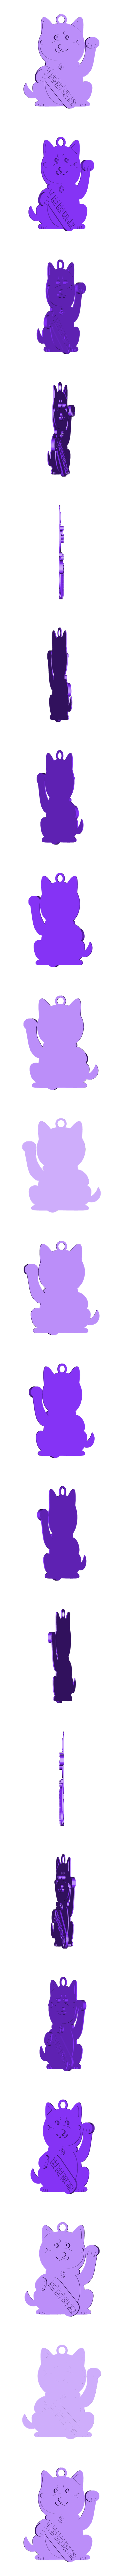 2018-dog04-w2.stl Download free STL file 2018 HAPPY CHINESE NEW YEAR-YEAR OF The Dog Keychain / Magnets • 3D printing design, mingshiuan